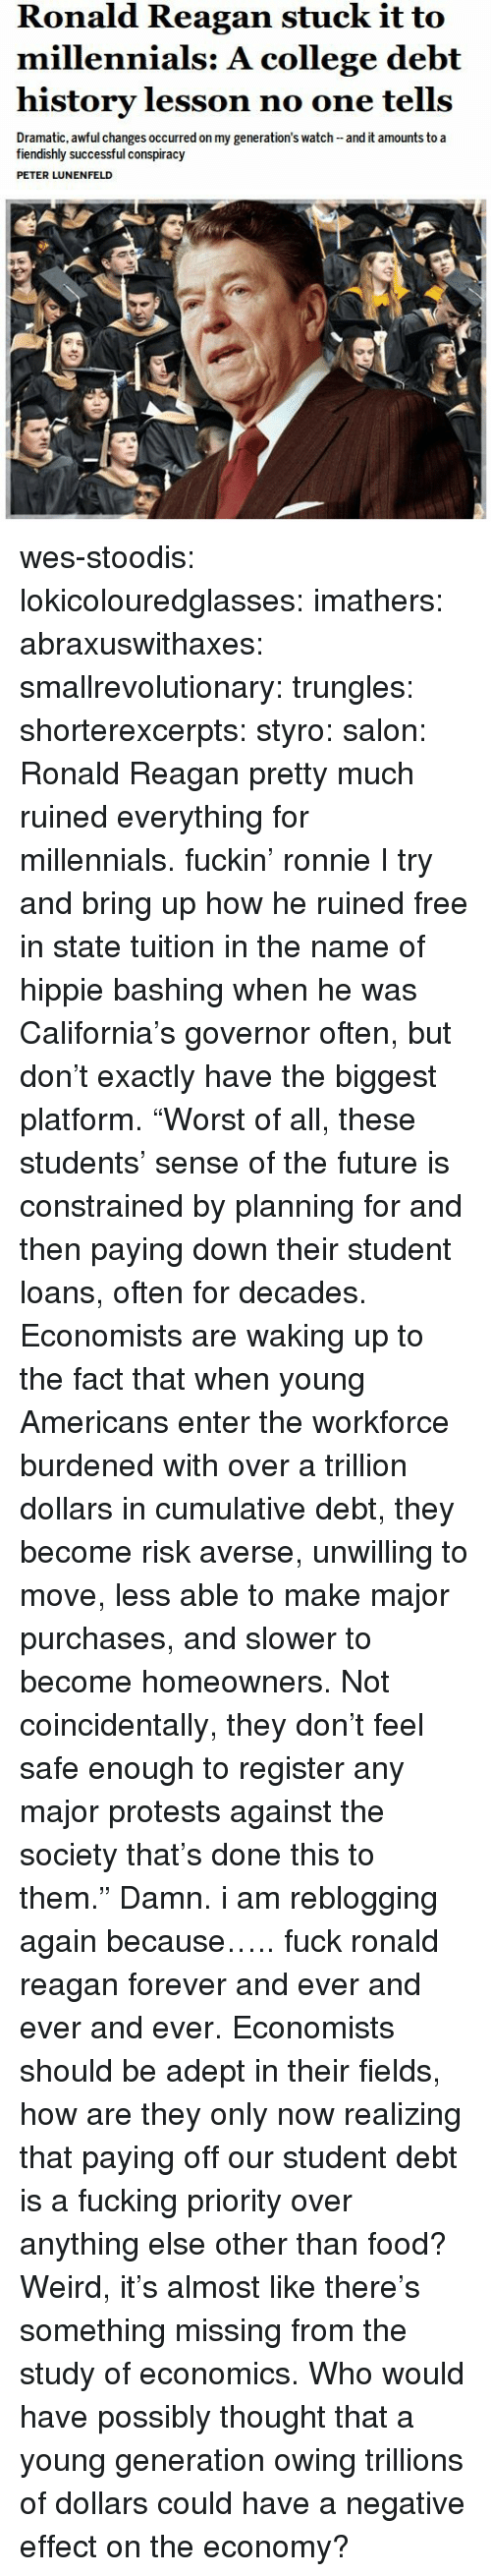 """College, Food, and Fucking: Ronald Reagan stuck it to  millennials: A college debt  history lesson no one tells  Dramatic, awful changes occurred on my generation's watch and it amounts to a  fiendishly successful conspiracy  PETER LUNENFELD wes-stoodis:  lokicolouredglasses:  imathers:  abraxuswithaxes:  smallrevolutionary:  trungles:  shorterexcerpts:  styro:  salon:  Ronald Reagan pretty much ruined everything for millennials.   fuckin' ronnie  I try and bring up how he ruined free in state tuition in the name of hippie bashing when he was California's governor often, but don't exactly have the biggest platform.  """"Worst of all, these students' sense of the future is constrained by planning for and then paying down their student loans, often for decades. Economists are waking up to the fact that when young Americans enter the workforce burdened with over a trillion dollars in cumulative debt, they become risk averse, unwilling to move, less able to make major purchases, and slower to become homeowners.Not coincidentally, they don't feel safe enough to register any major protests against the society that's done this to them."""" Damn.  i am reblogging again because….. fuck ronald reagan forever and ever and ever and ever.   Economists should be adept in their fields, how are they only now realizing that paying off our student debt is a fucking priority over anything else other than food?  Weird, it's almost like there's something missing from the study of economics.  Who would have possibly thought that a young generation owing trillions of dollars could have a negative effect on the economy?"""